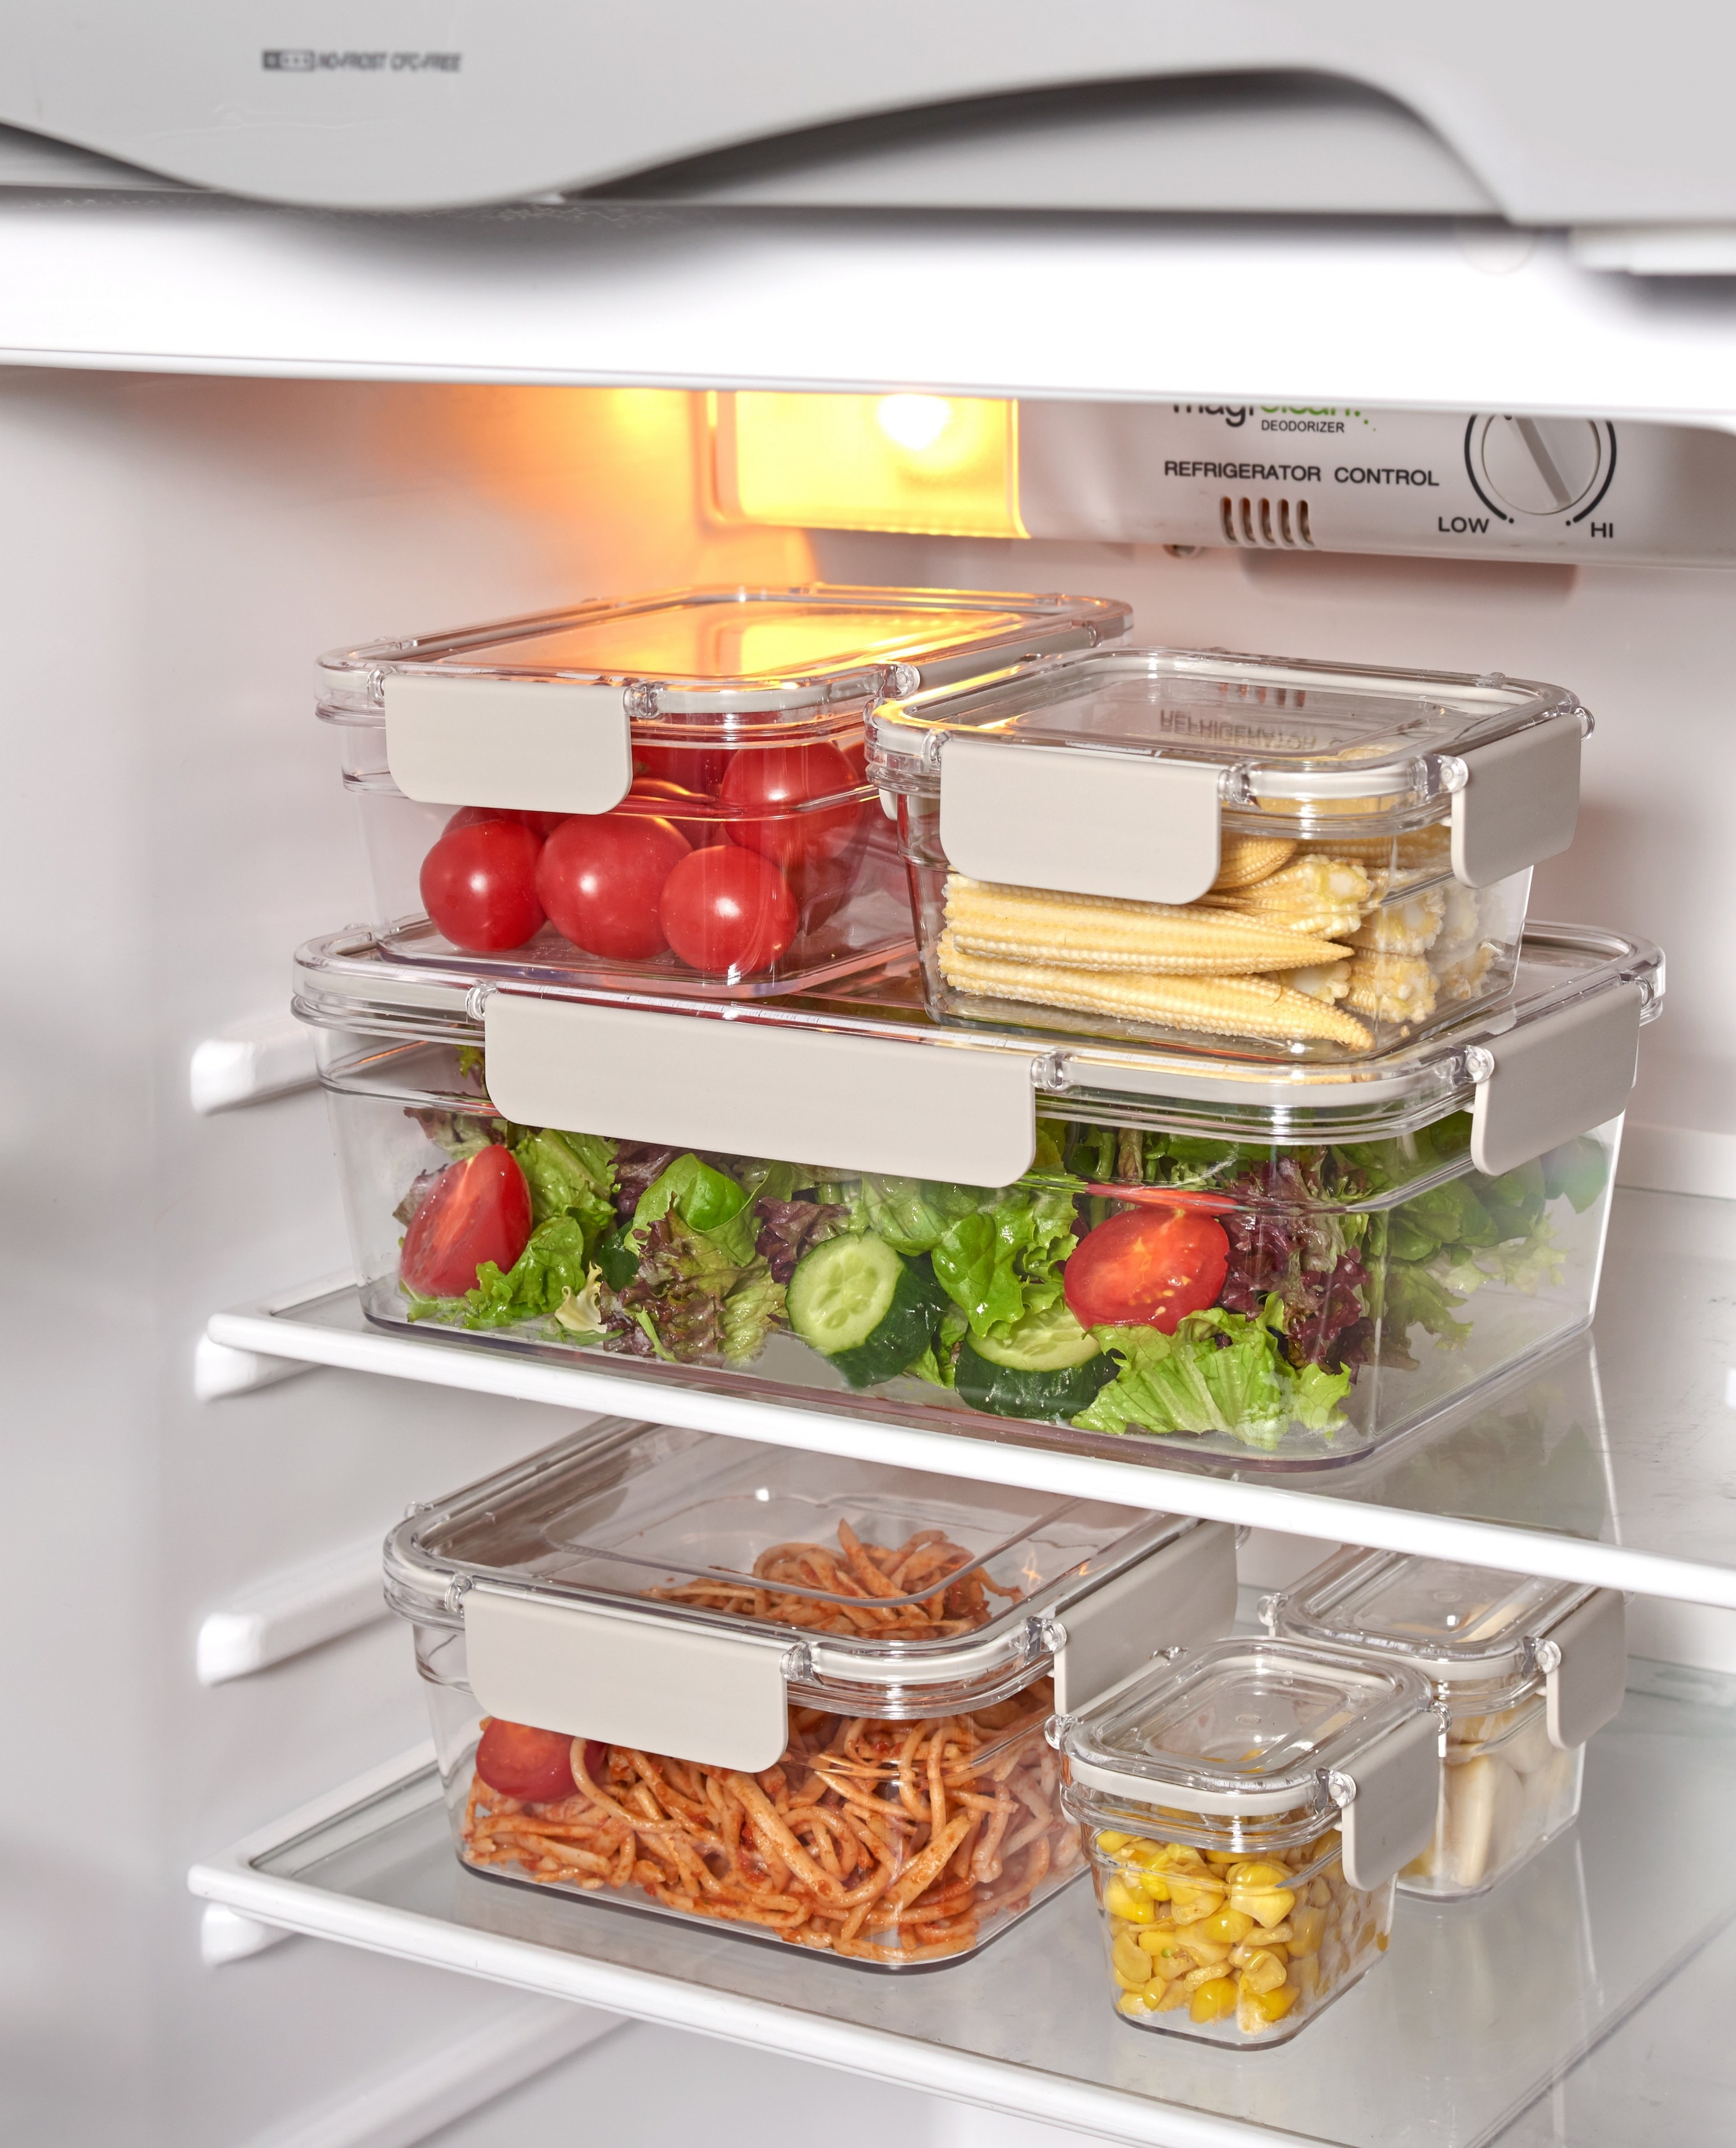 plastic food storage containers in a fridge